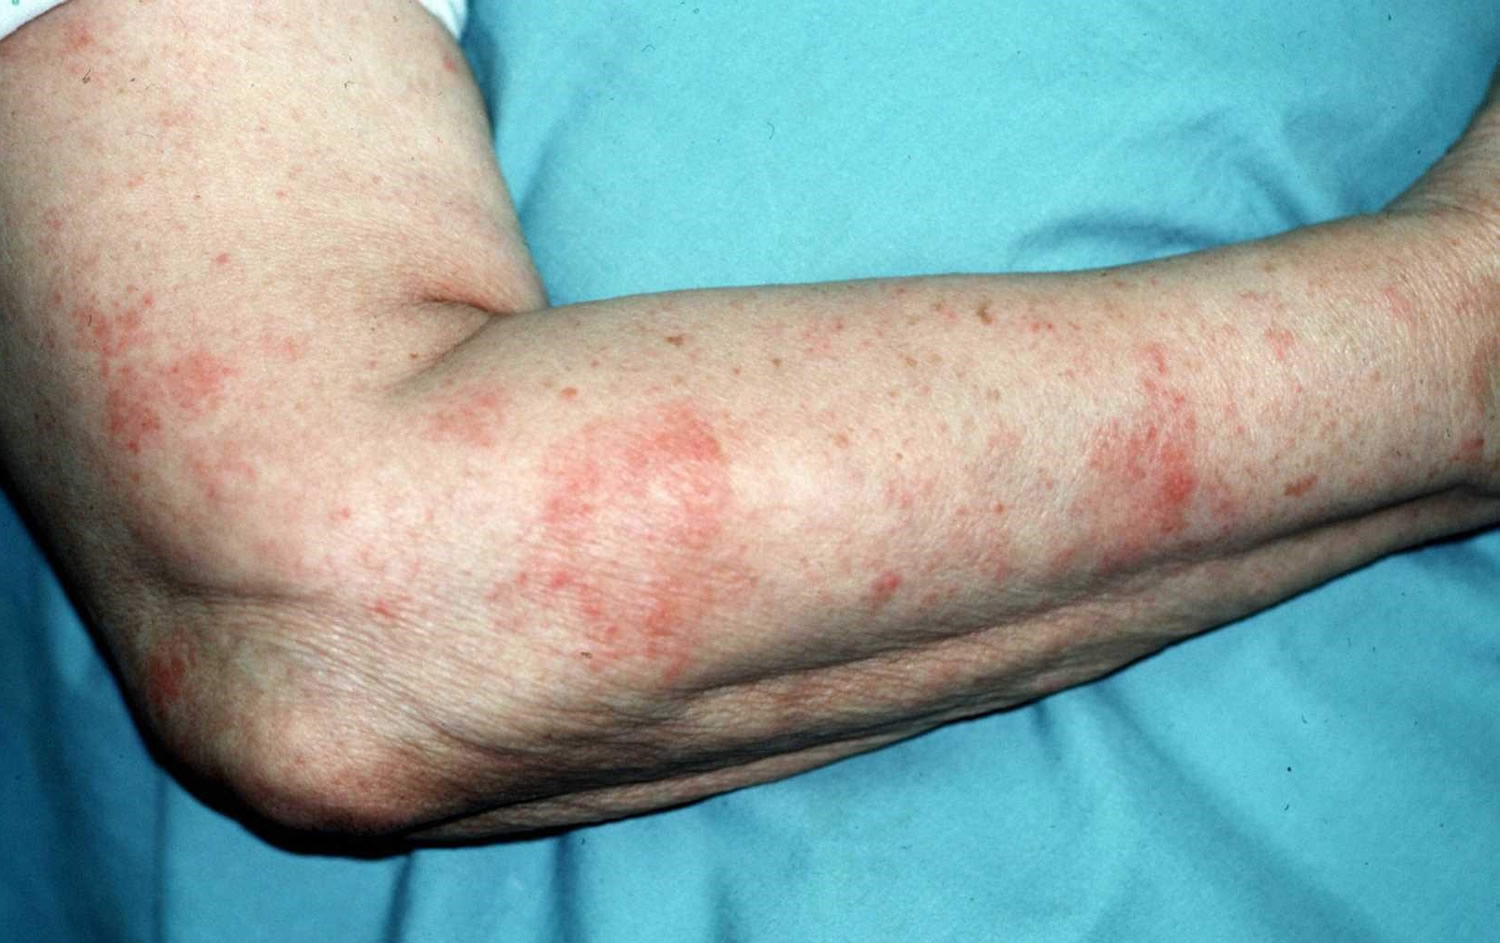 Home Remedies For Bad Eczema On Hands